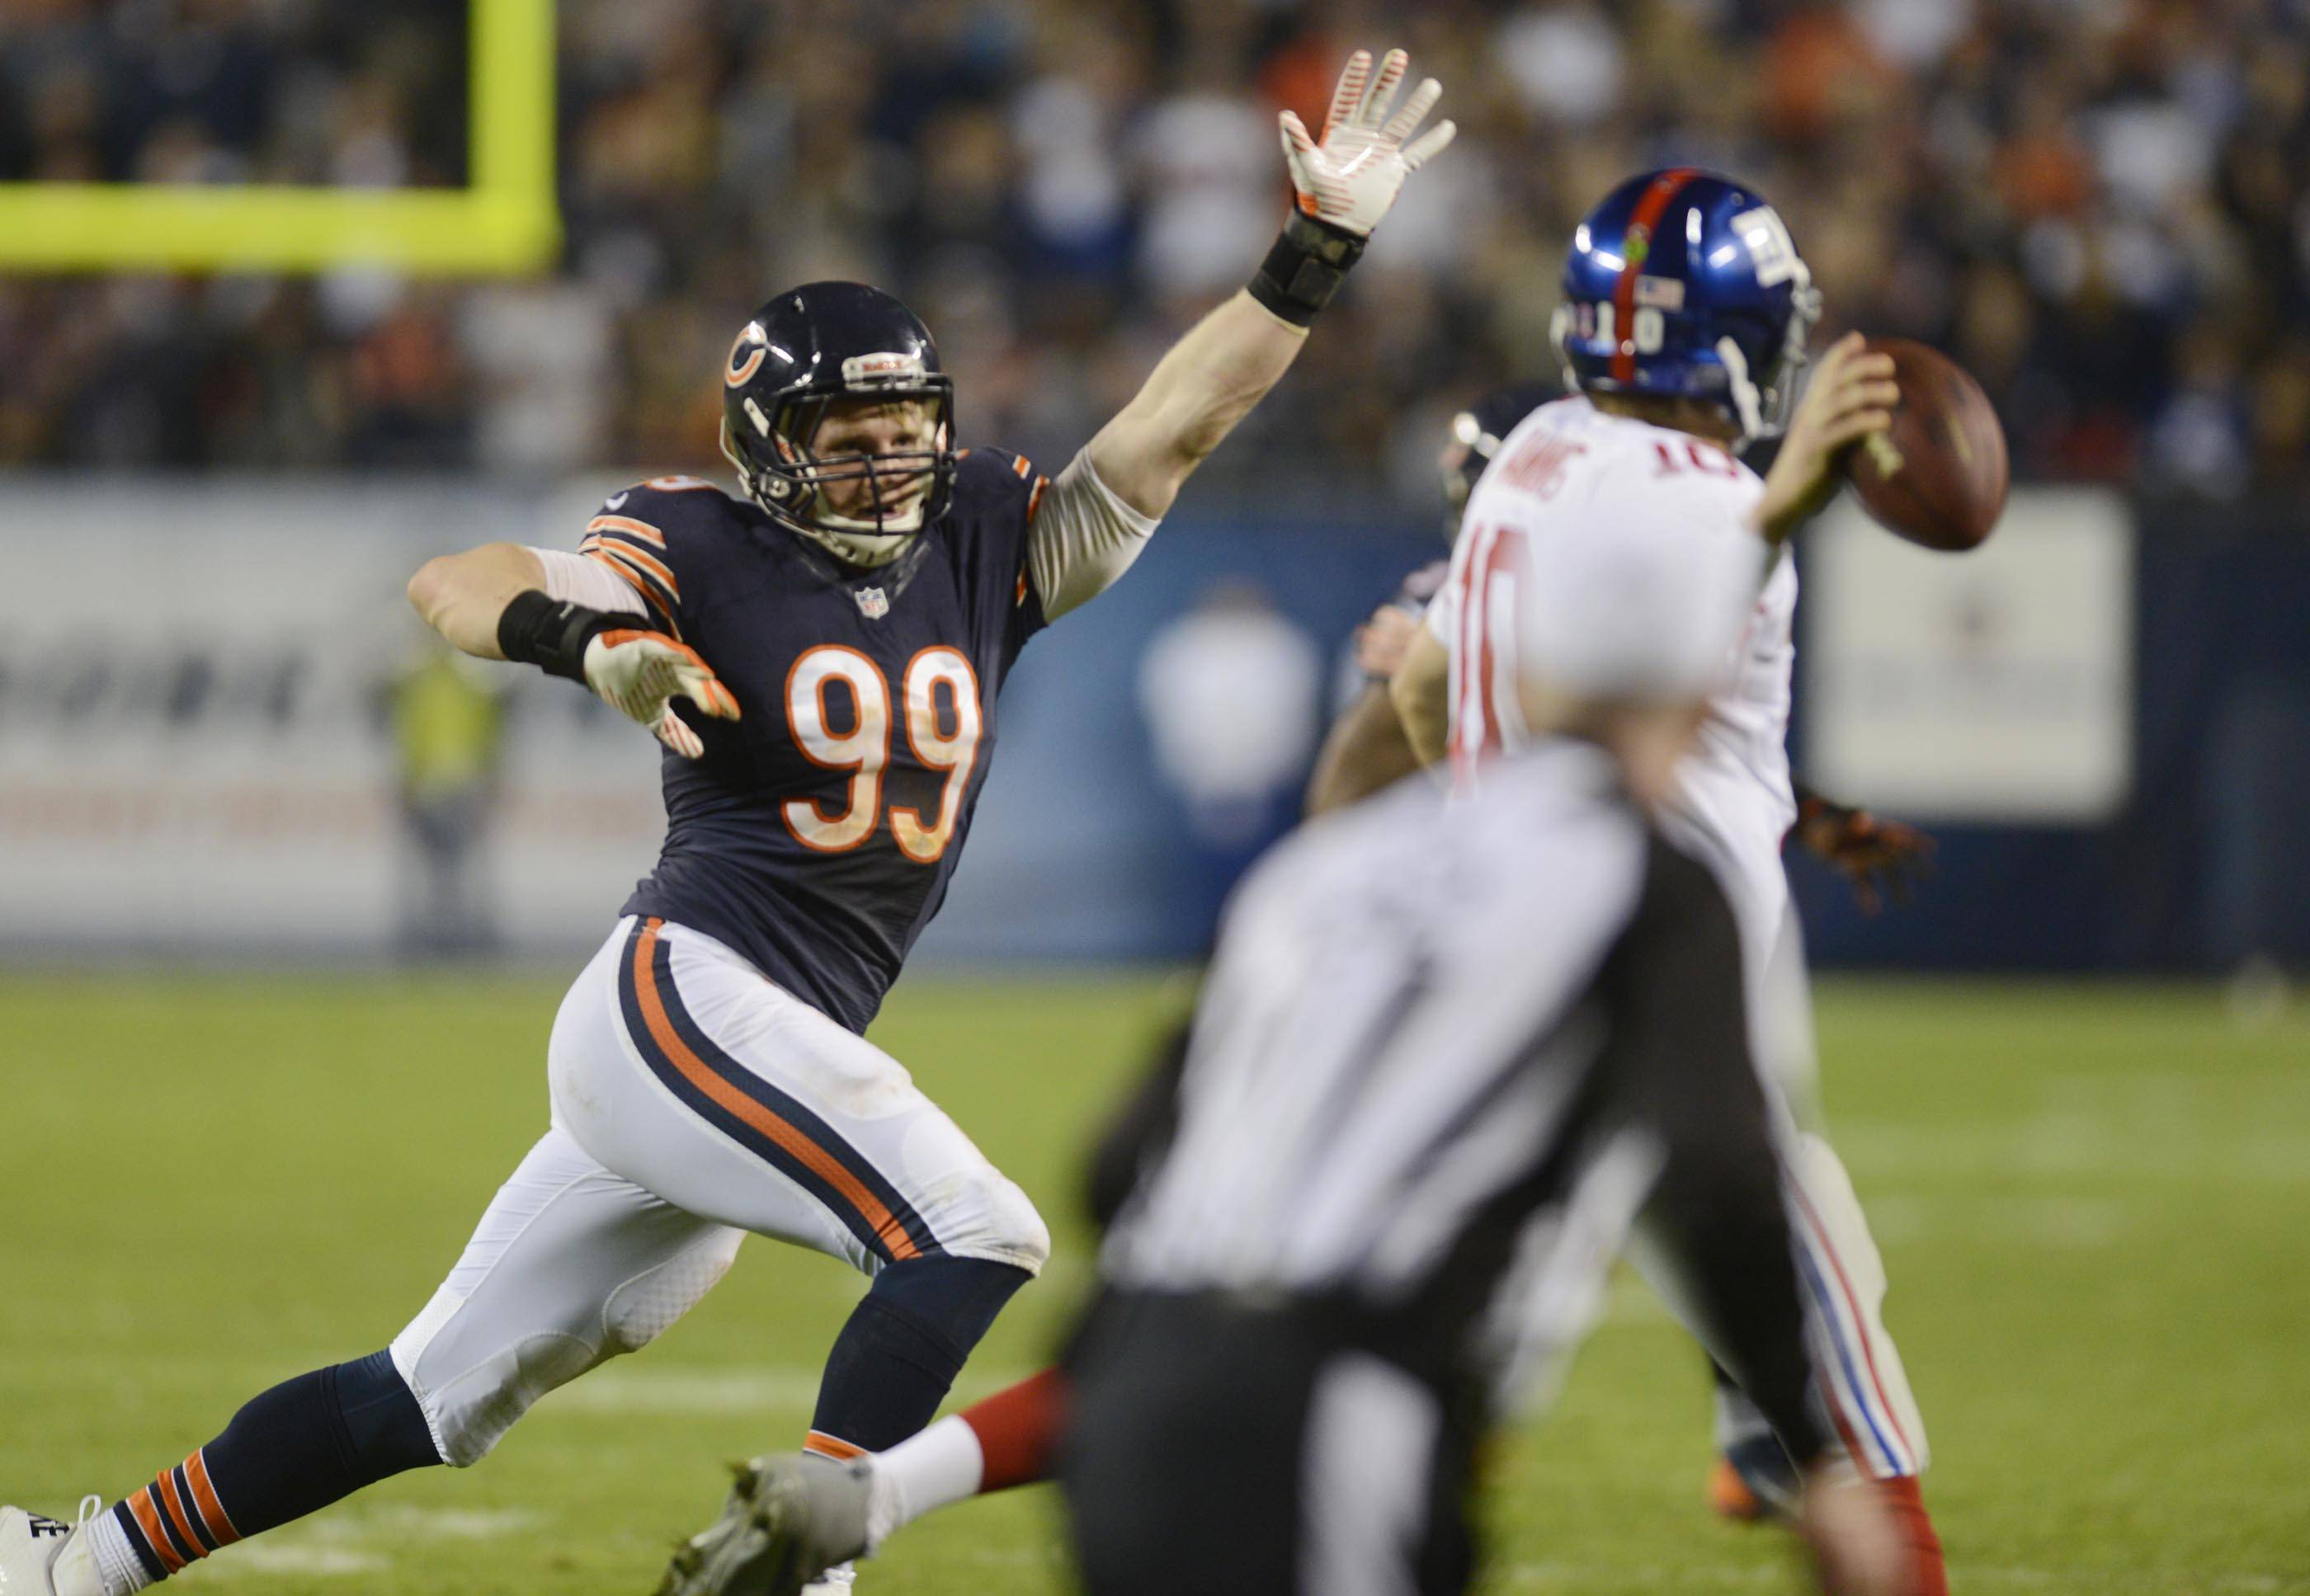 Shea McClellin, putting the pressure on New York Giants quarterback Eli Manning last season as a defensive end, is adjusting to his new position at strongside linebacker.